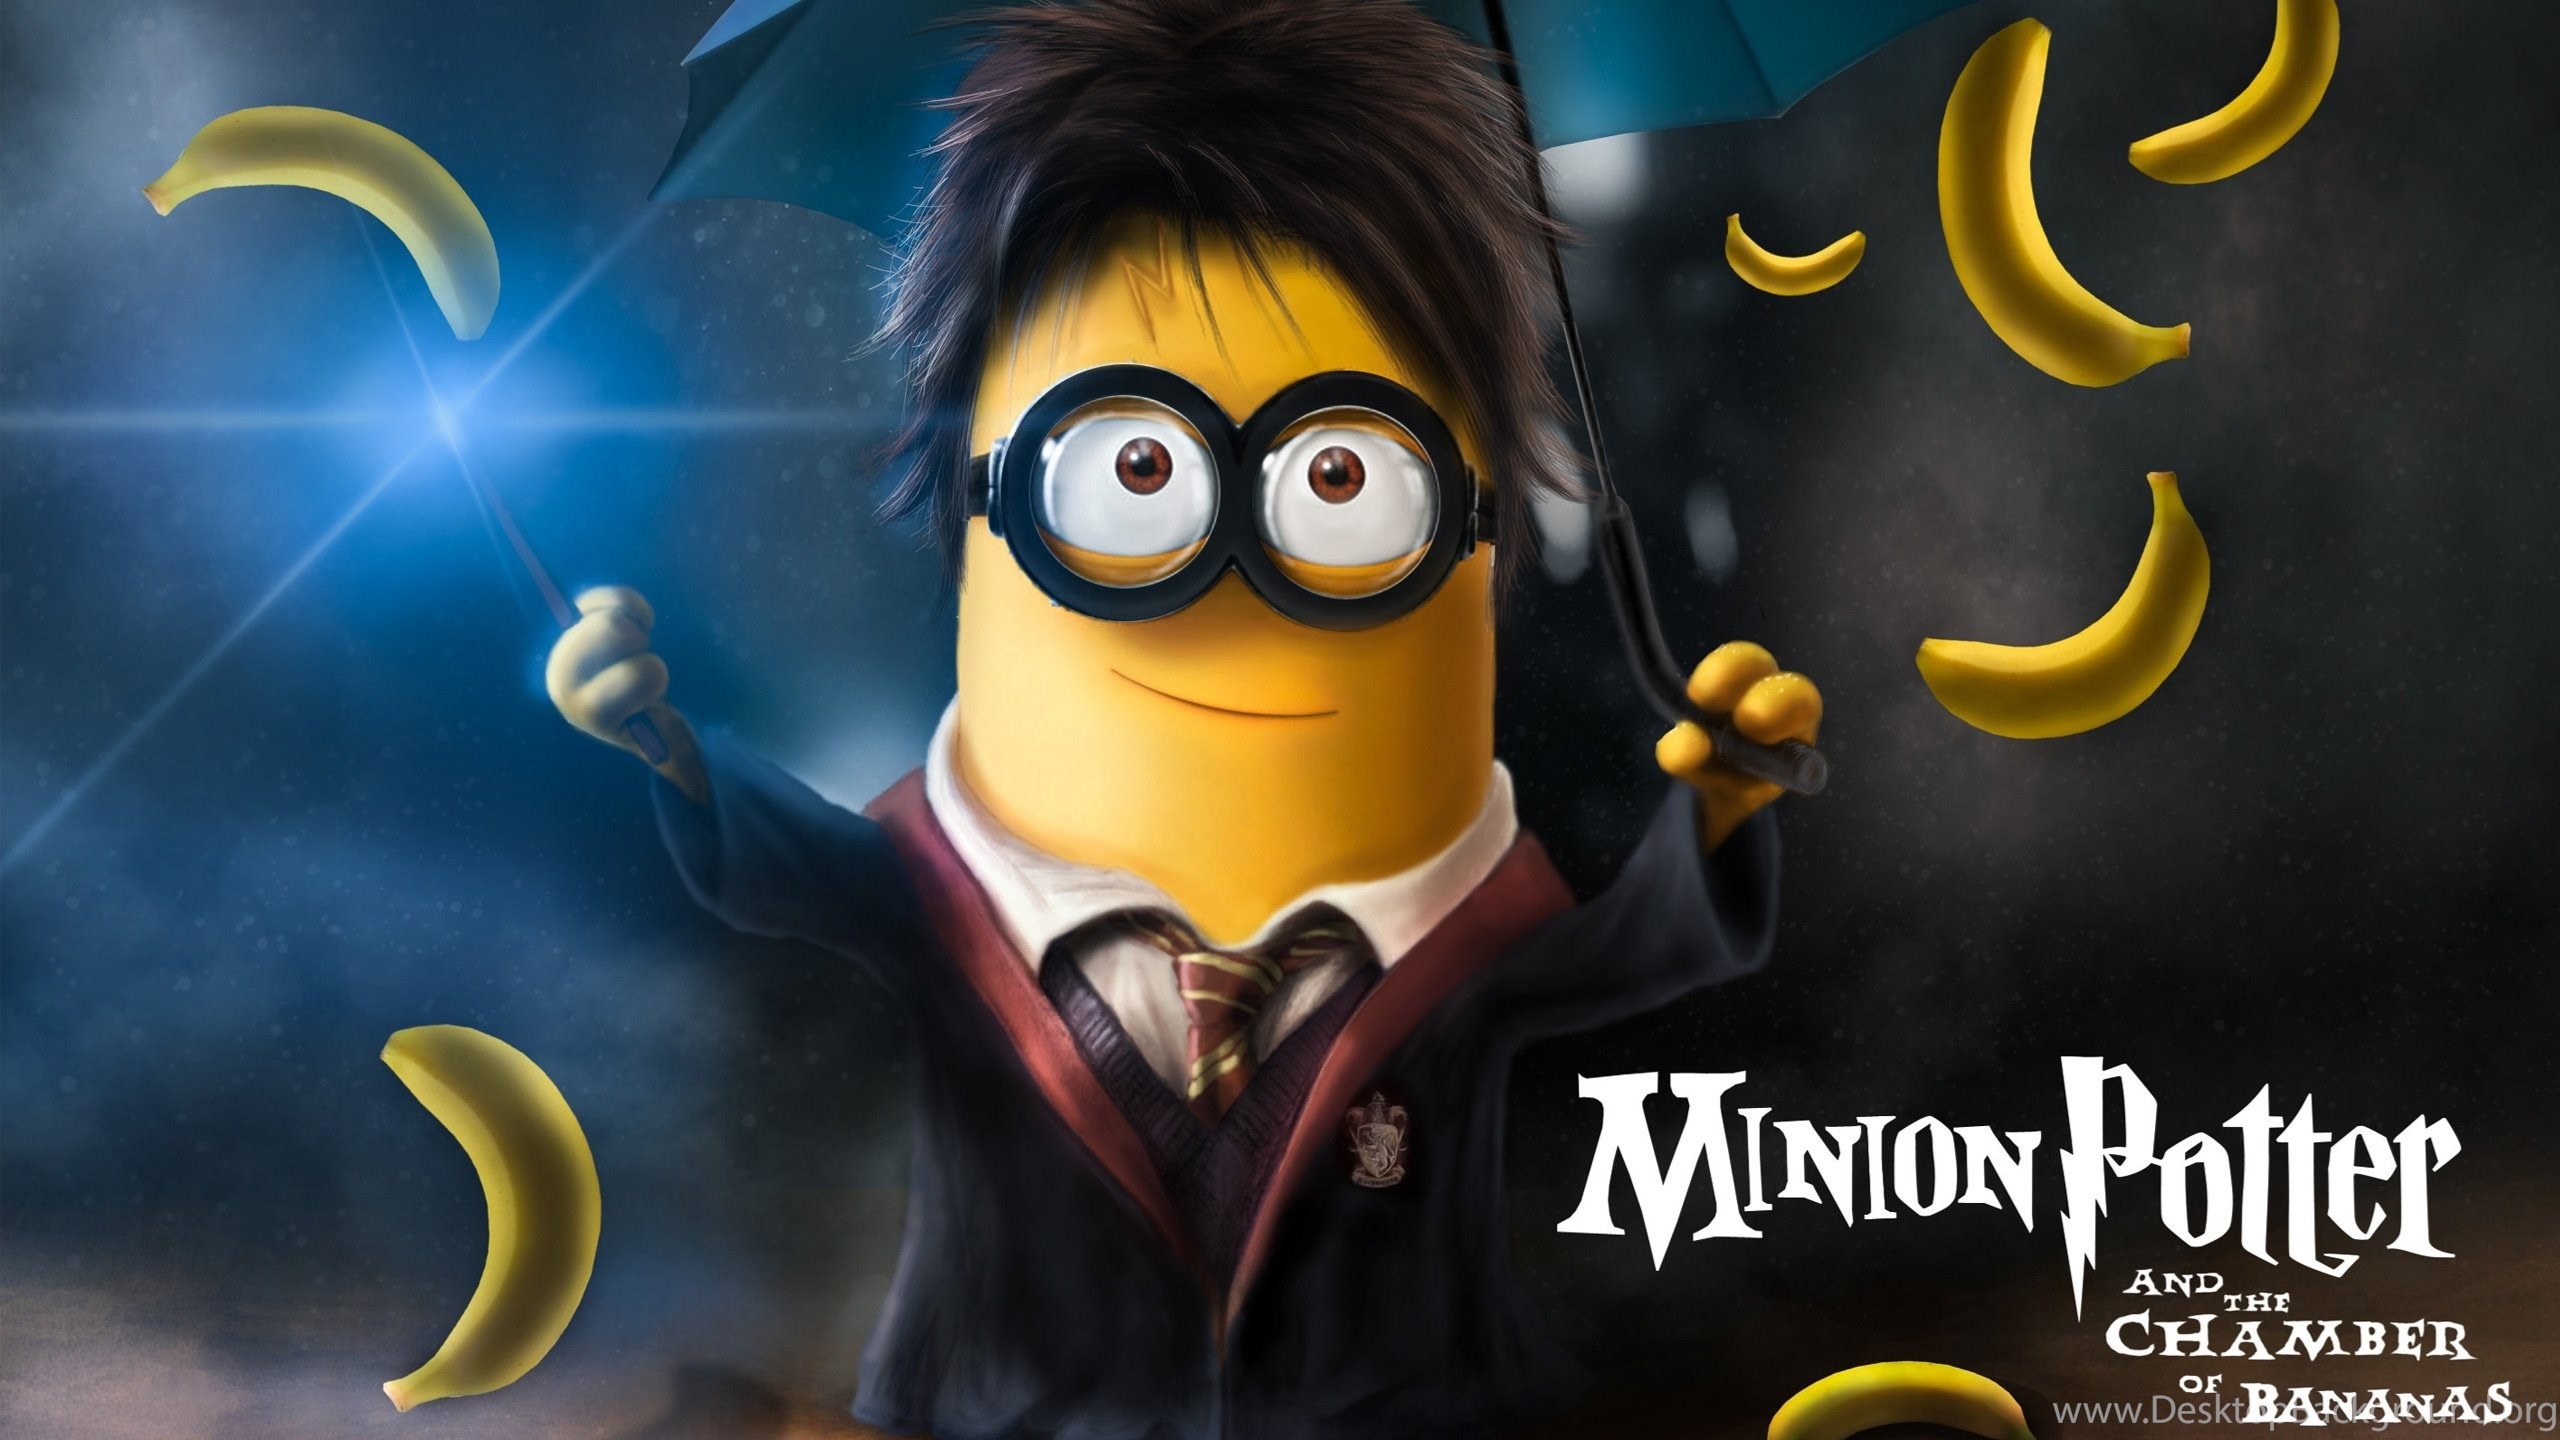 Good Wallpaper Harry Potter Android - 1027351_minion-harry-potter-wallpapers_2560x1440_h  Snapshot_52151.jpg